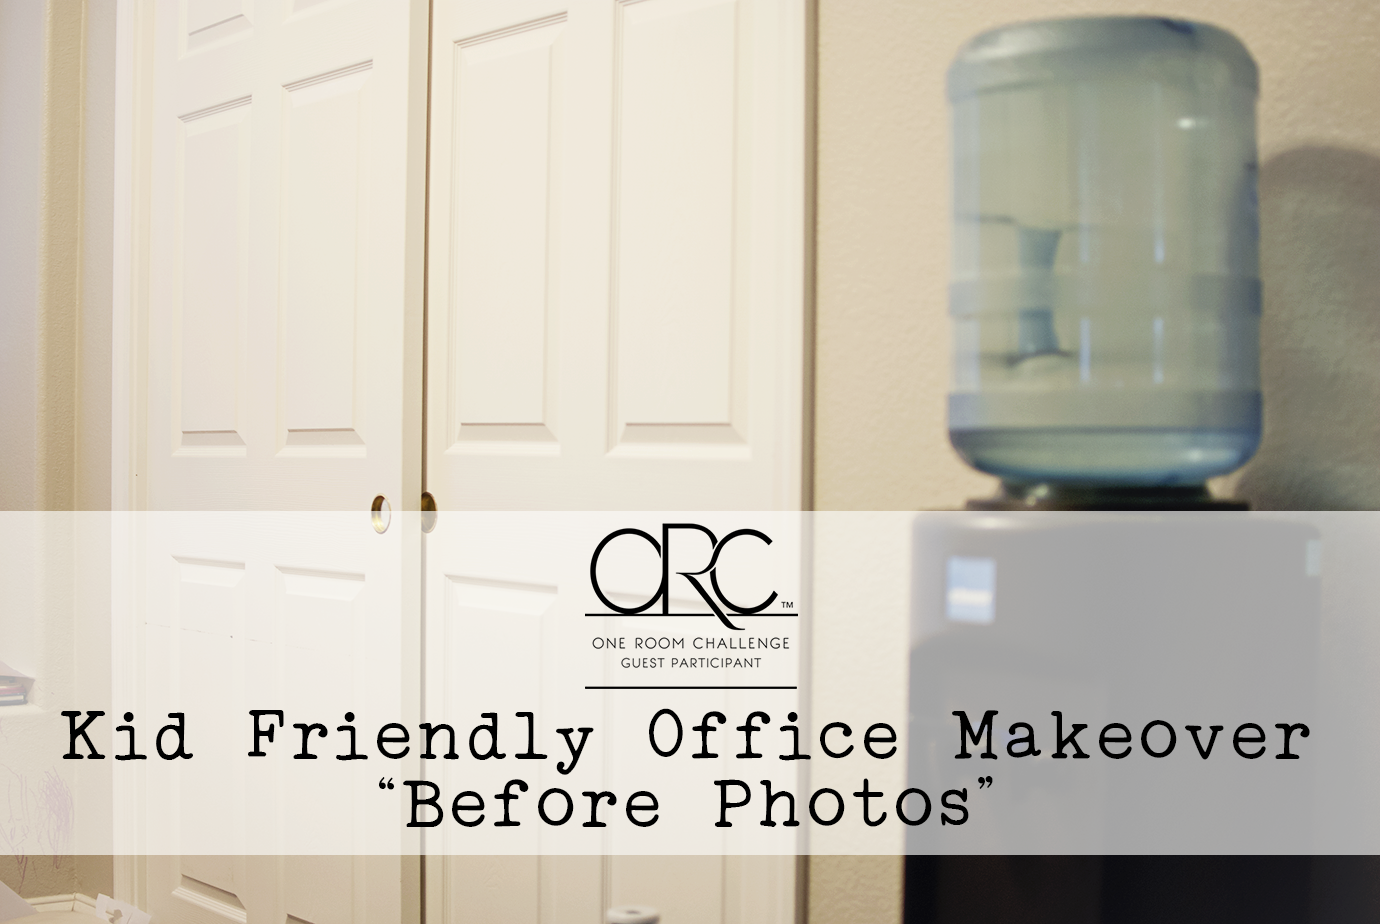 One Room Challenge Kid Friendly Office Makeover Before Photos